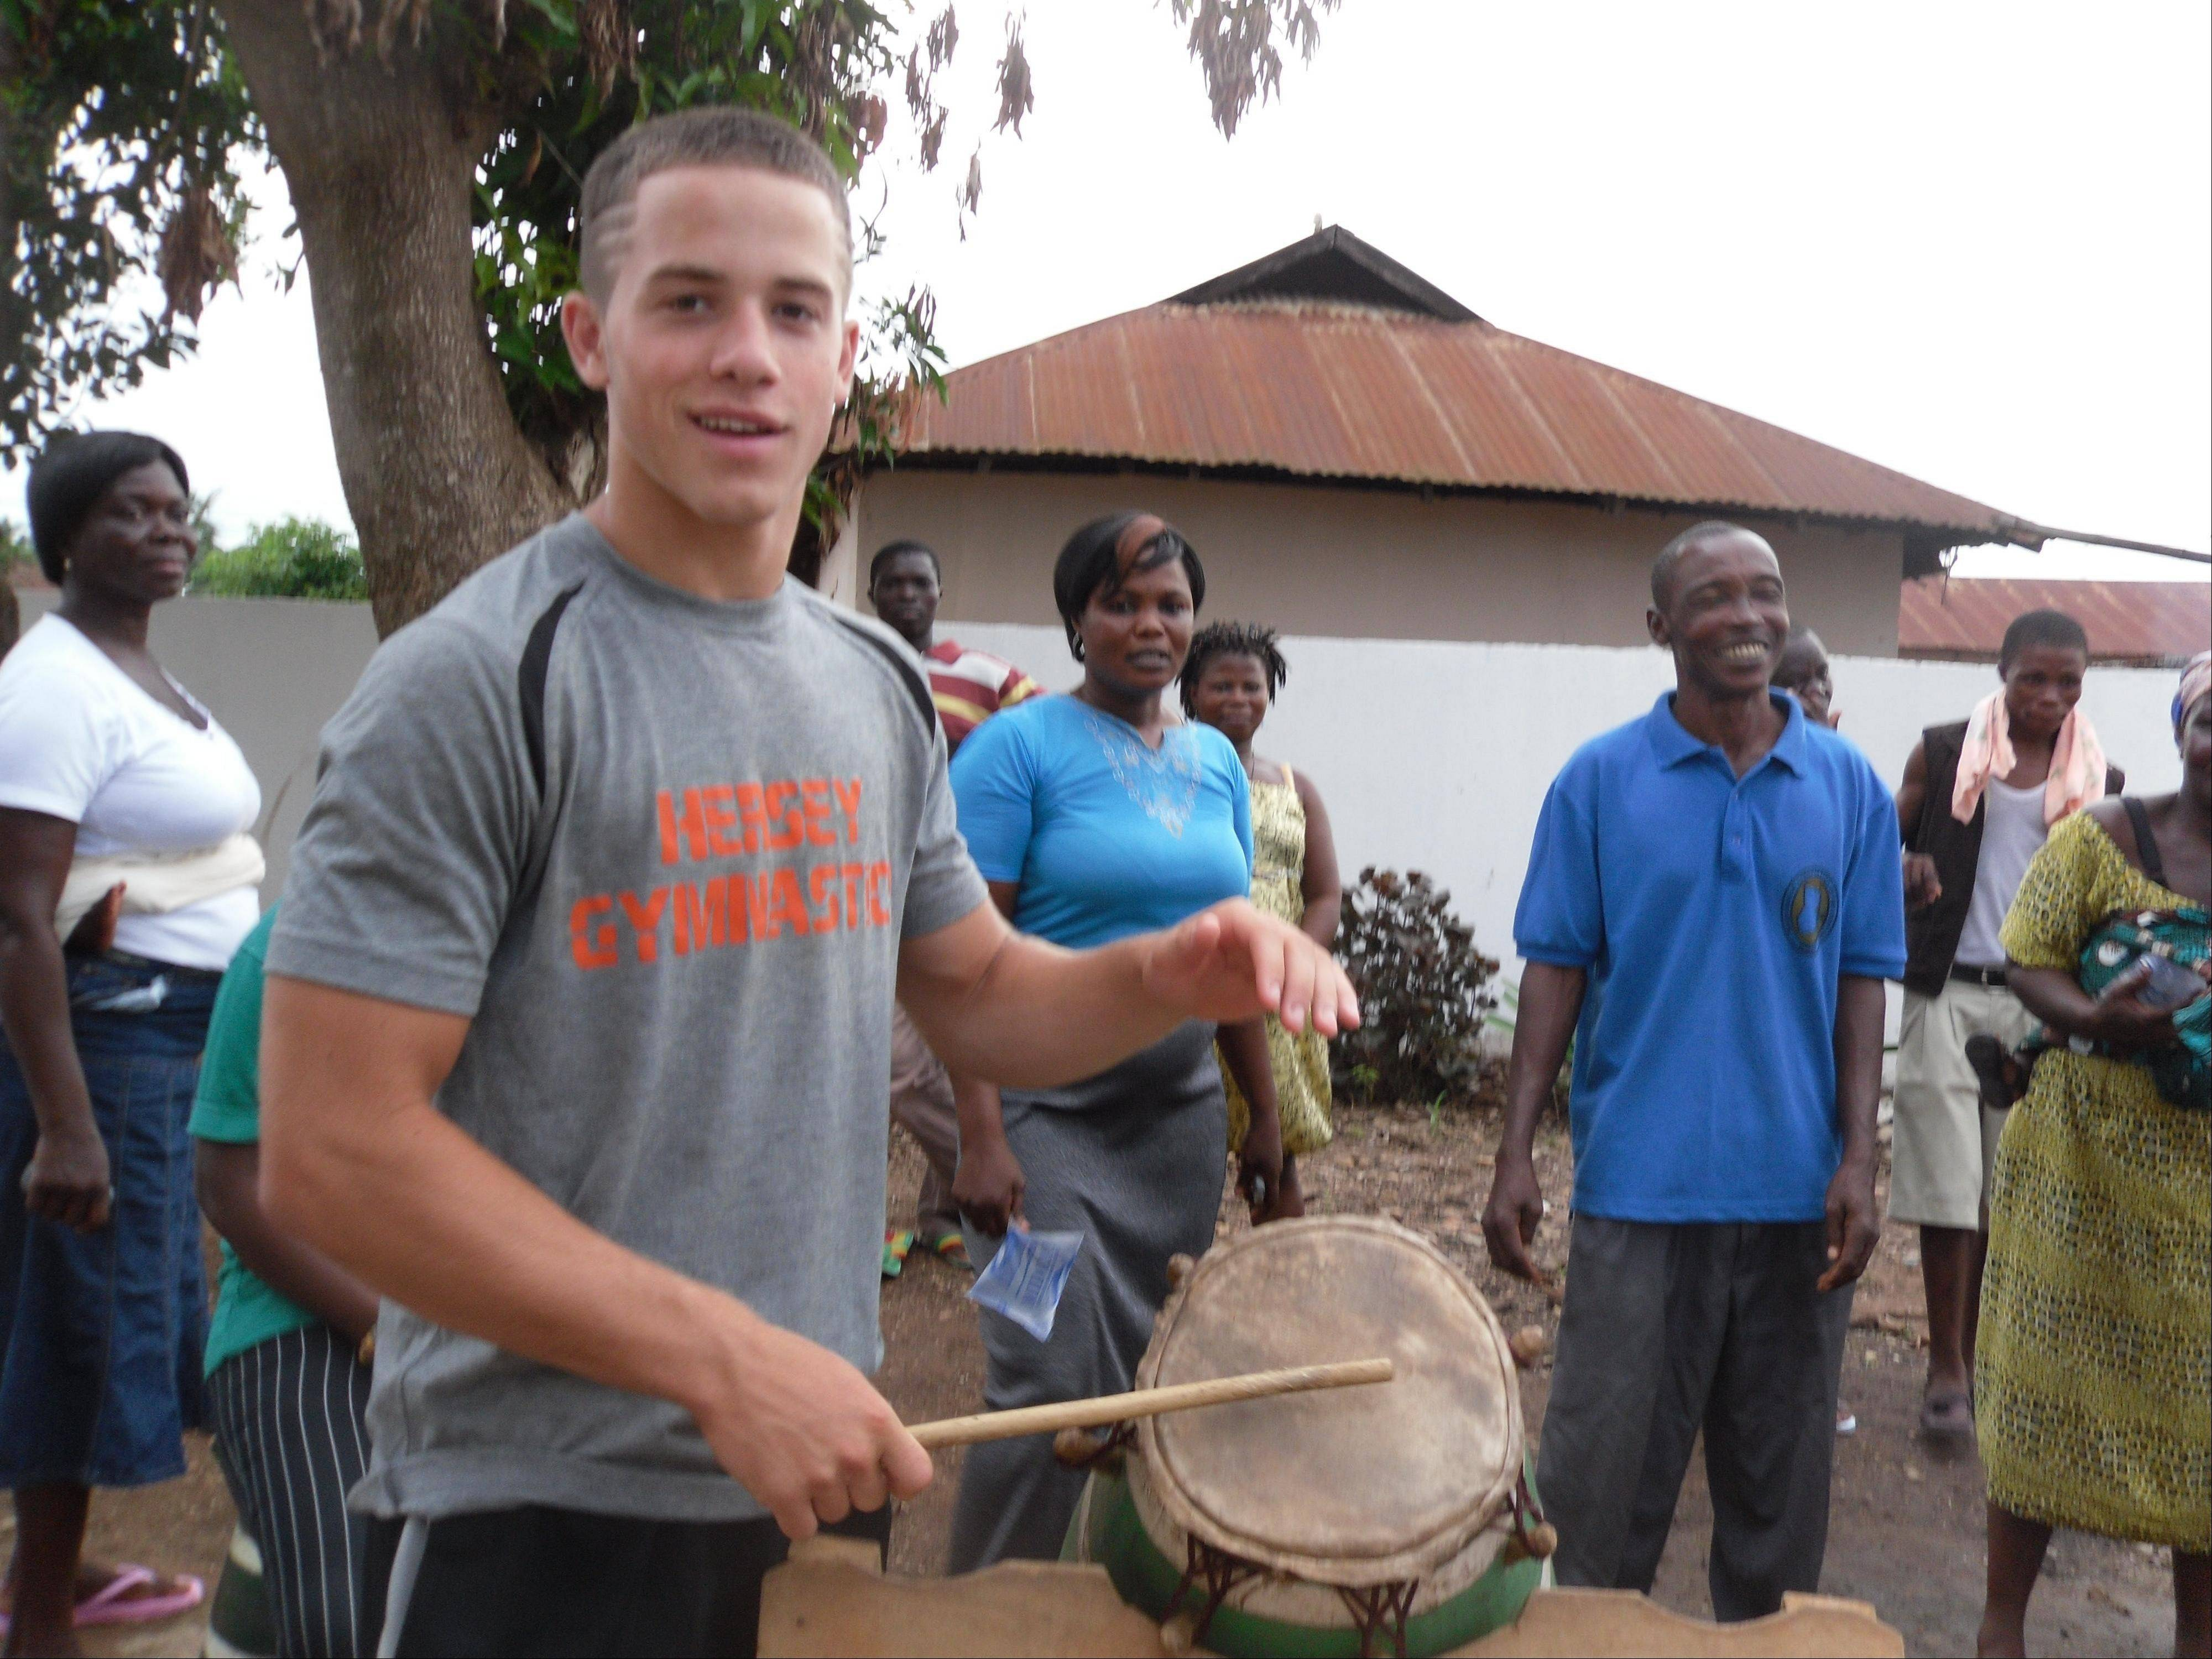 Hersey High School student Alex Baratta, 17, takes part in a traditional drum ceremony during a volunteer trip to Ghana.